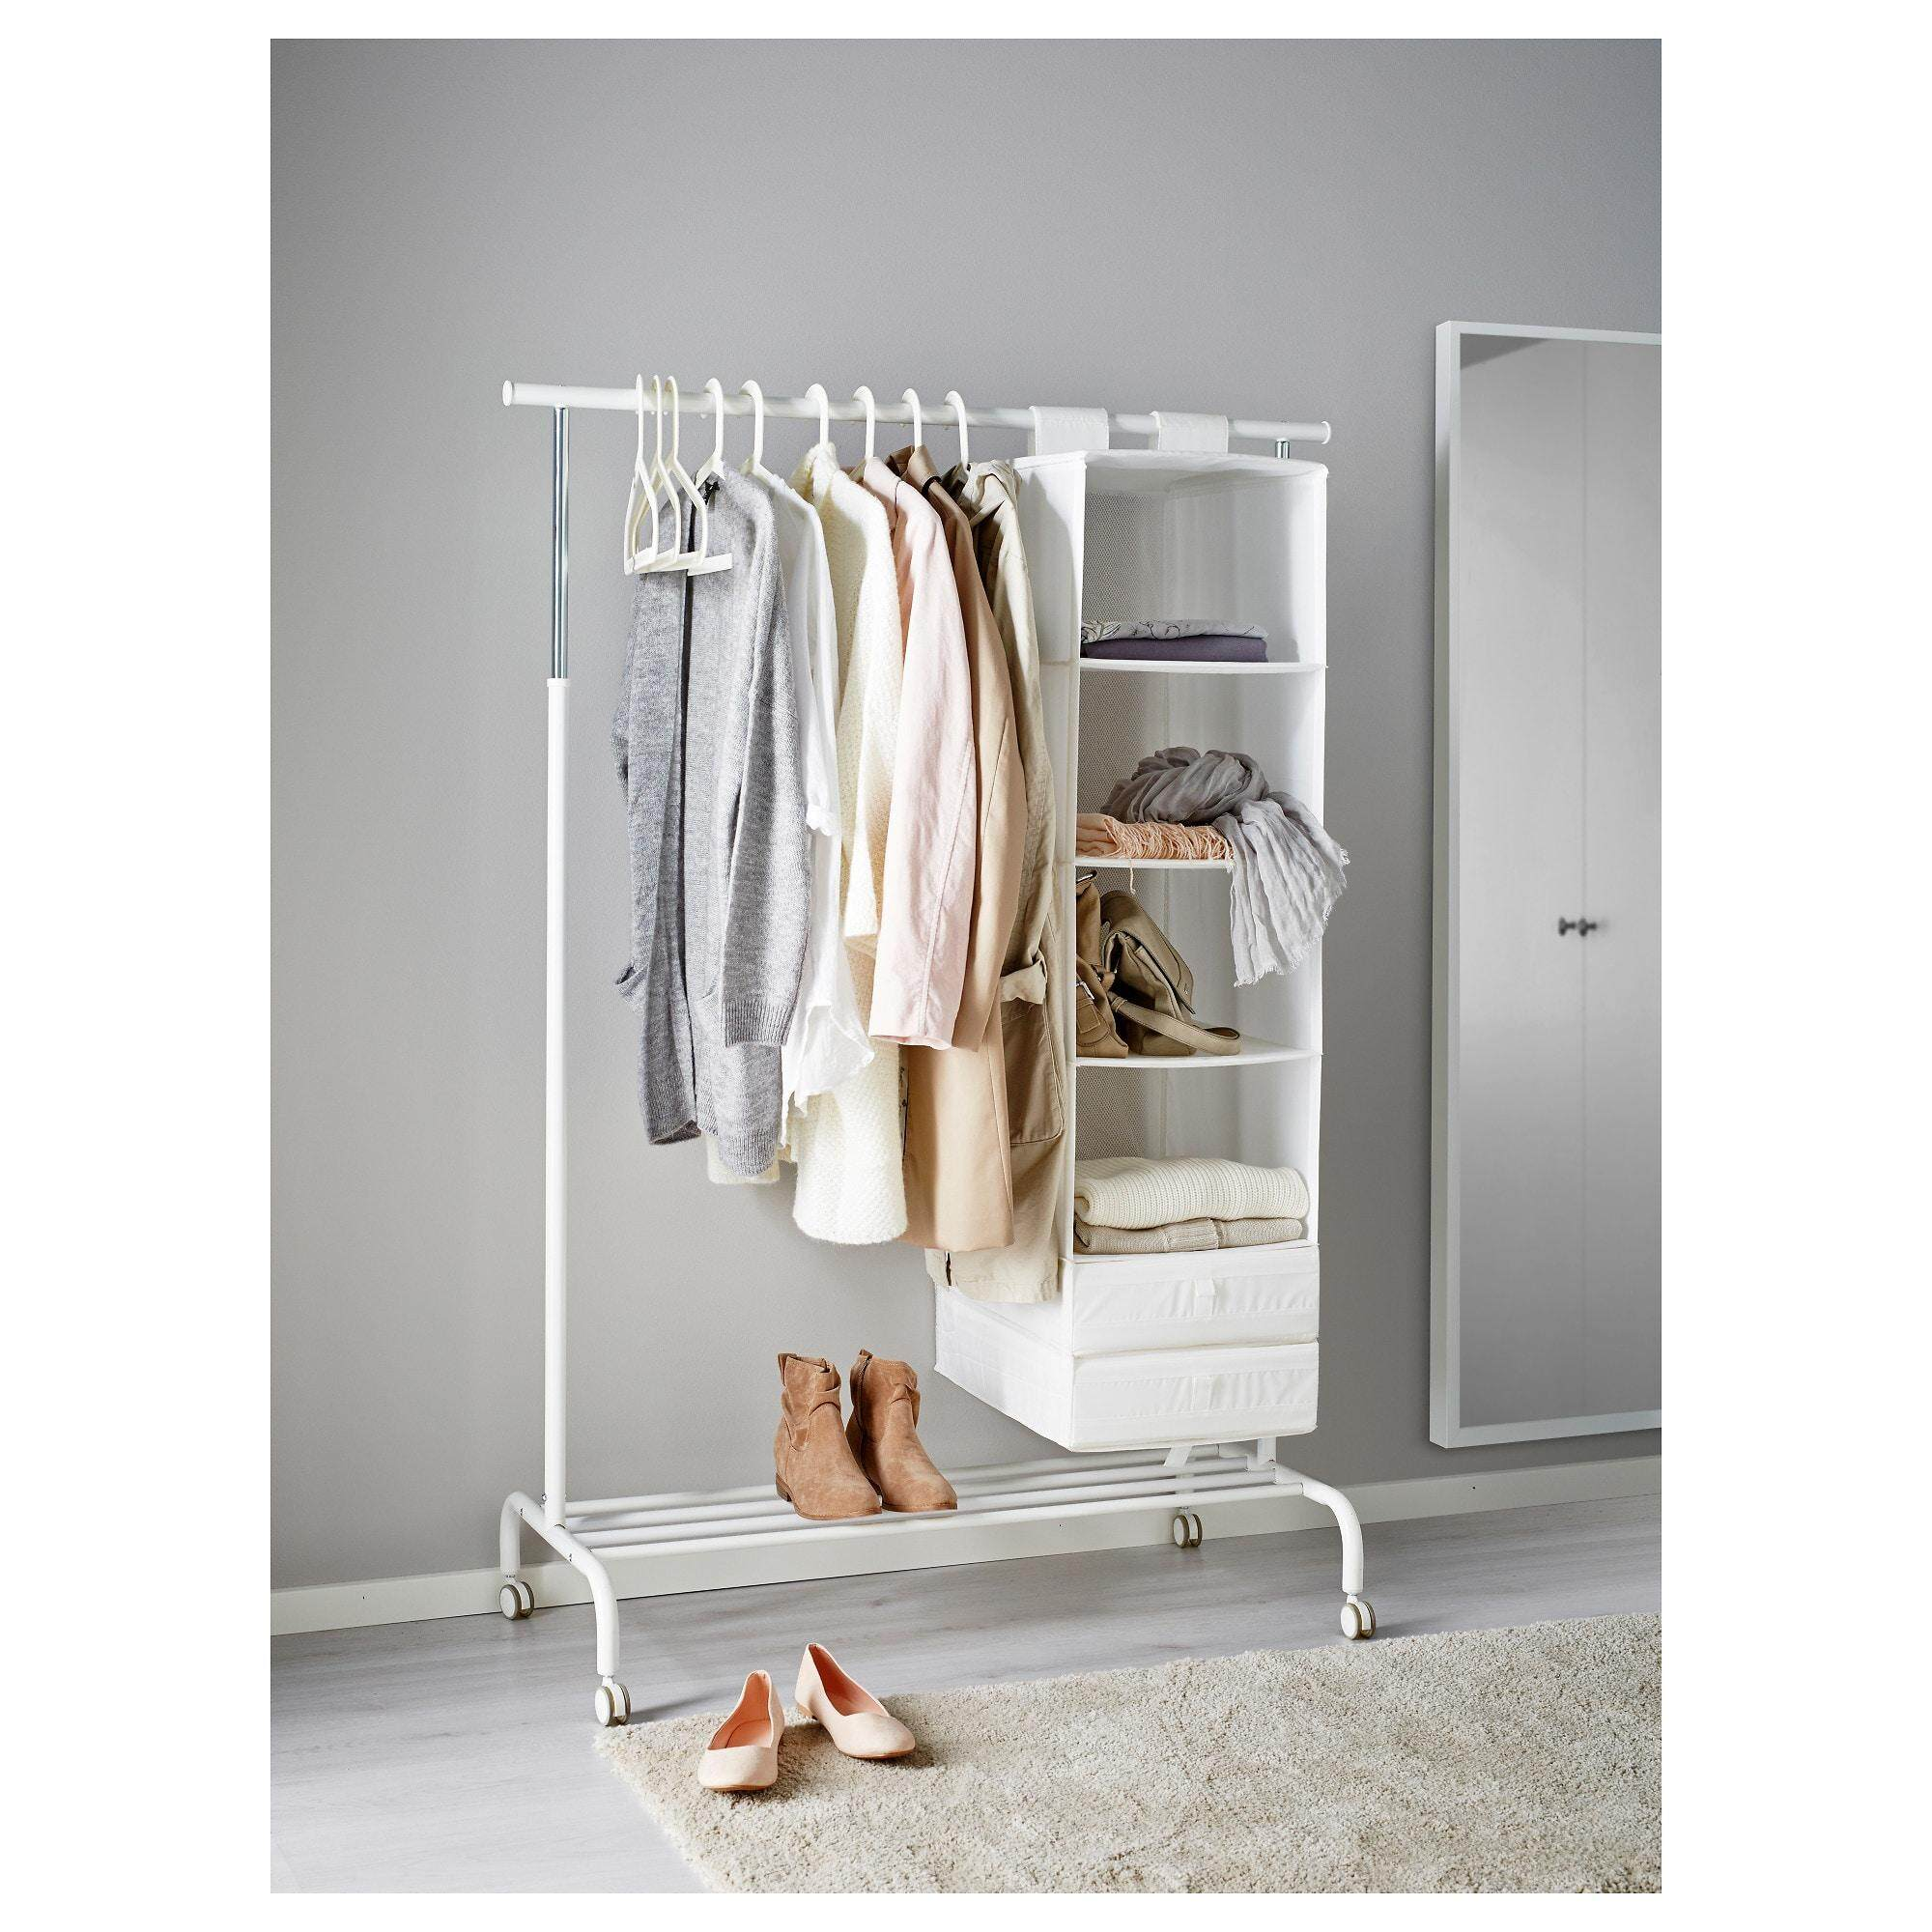 1KEA RIGGA Clothes Rack White Adjustable Height with Shoe Rack